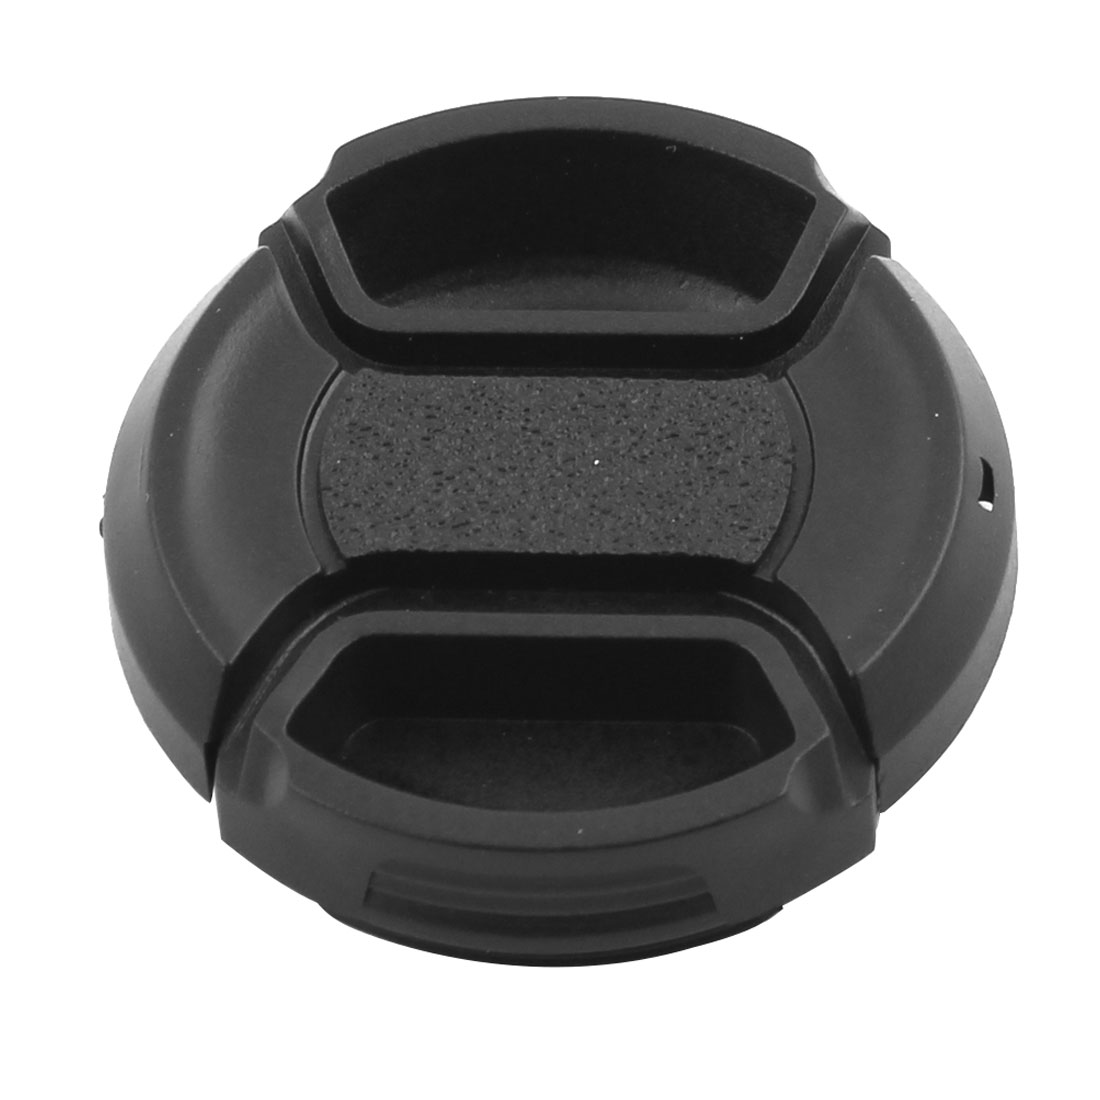 Plastic Front Snap Digital Camera Clip-on Lens Cap Cover Black 37mm Dia w Cord